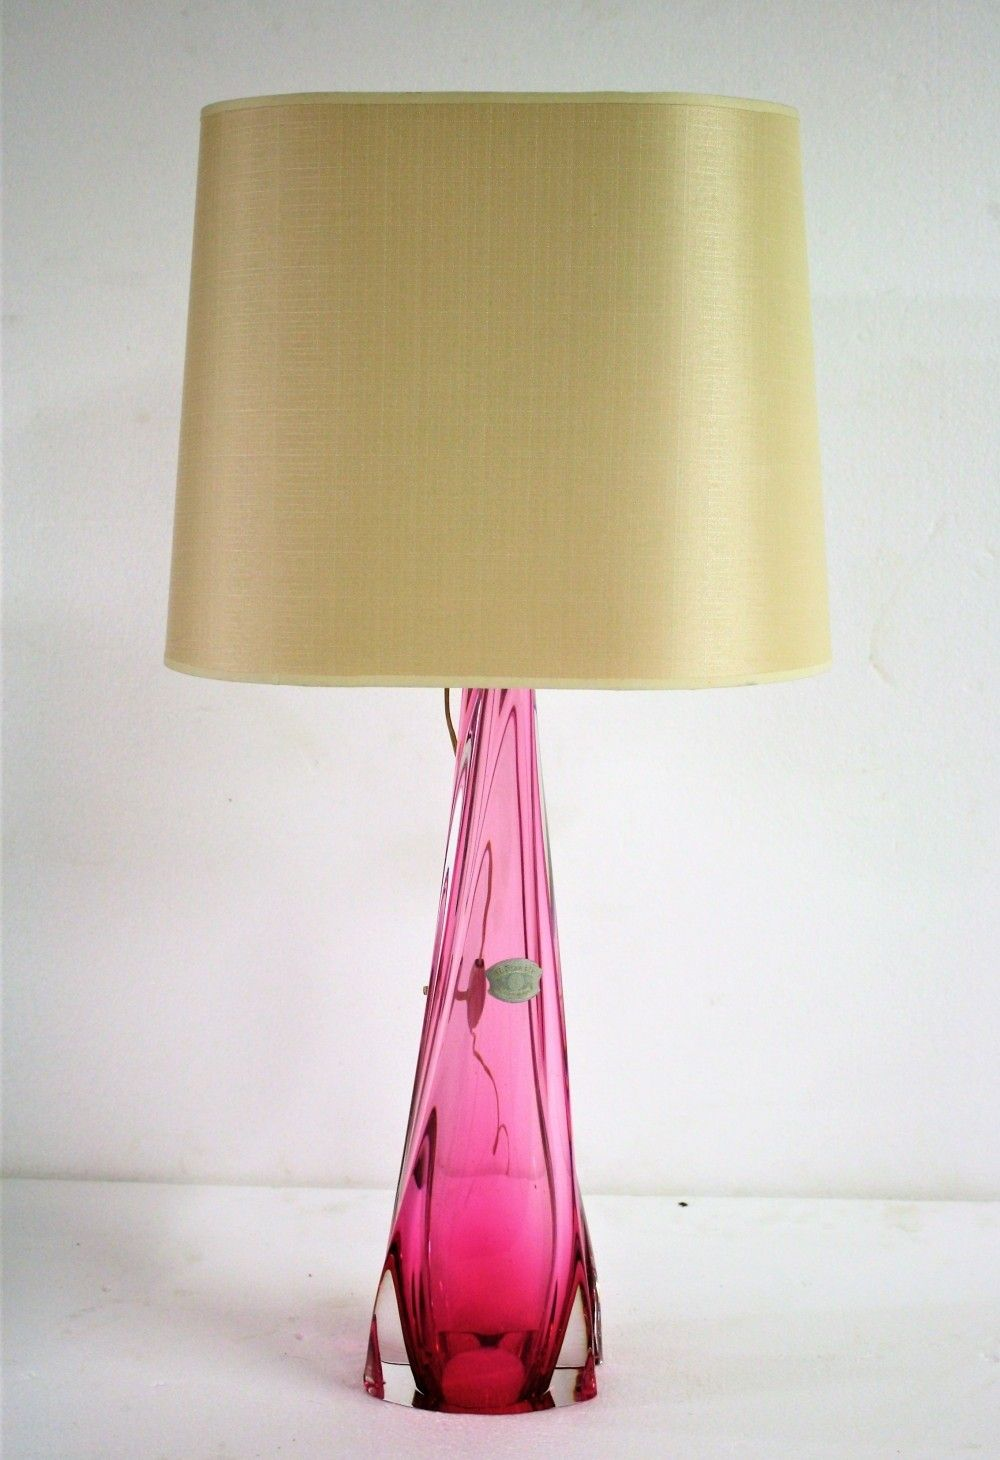 Rare Large Val St Lambert Pink Crystal Table Lamp 1960 Vintage